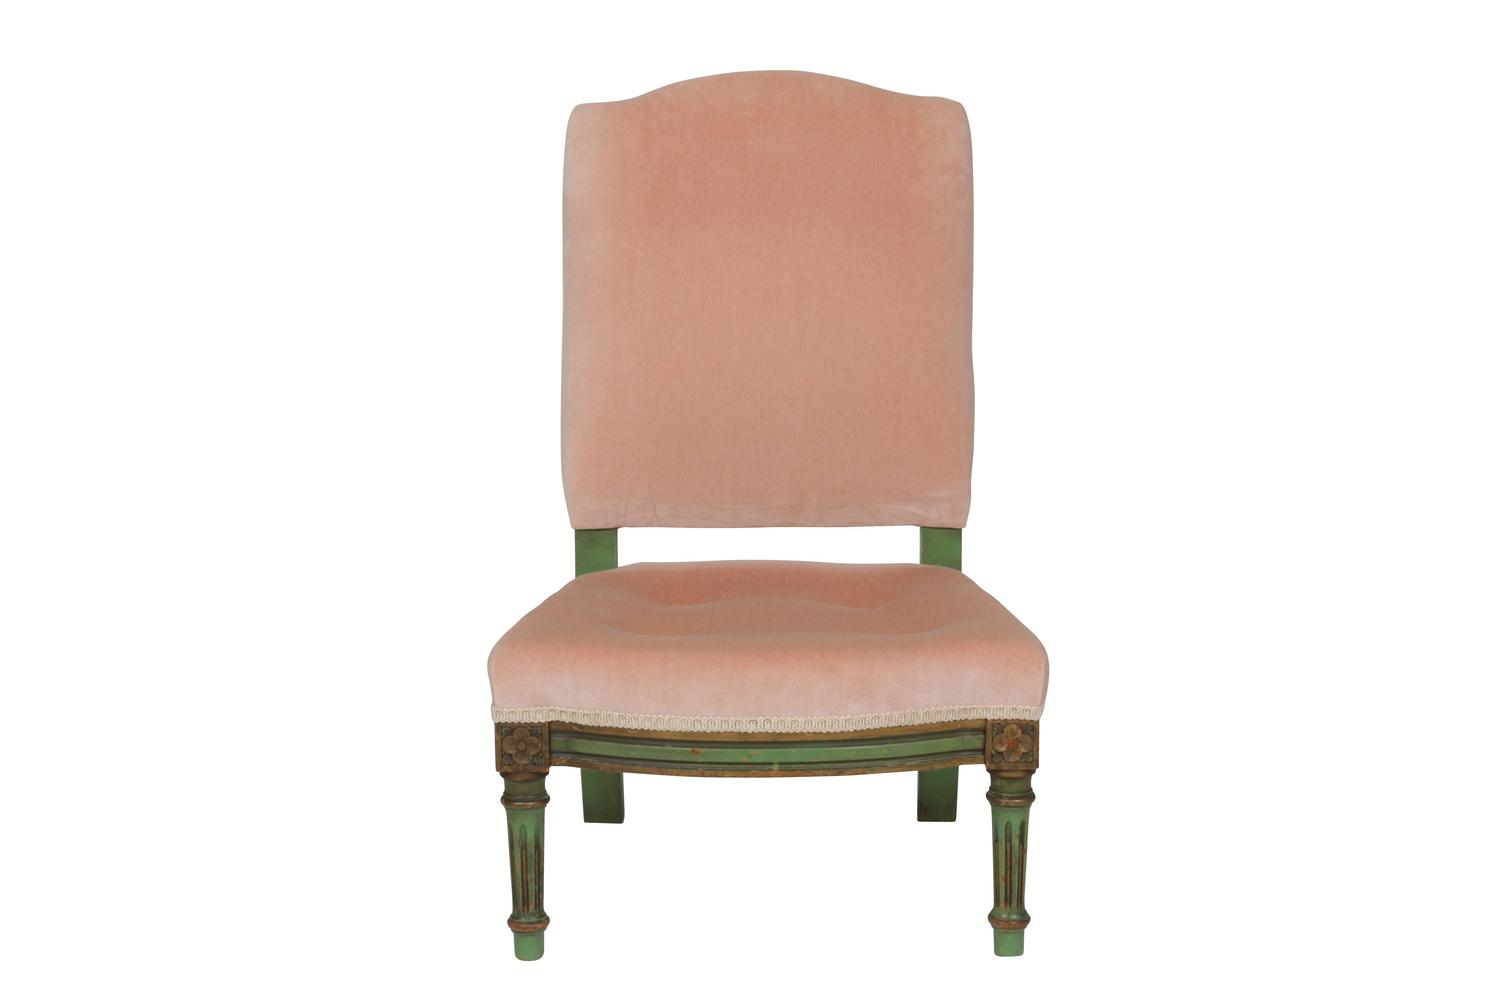 Pink Velvet And Painted Wood French Diminutive Slipper Chair Image 4. Full resolution  portrait, nominally Width 1500 Height 1000 pixels, portrait with #8A5641.